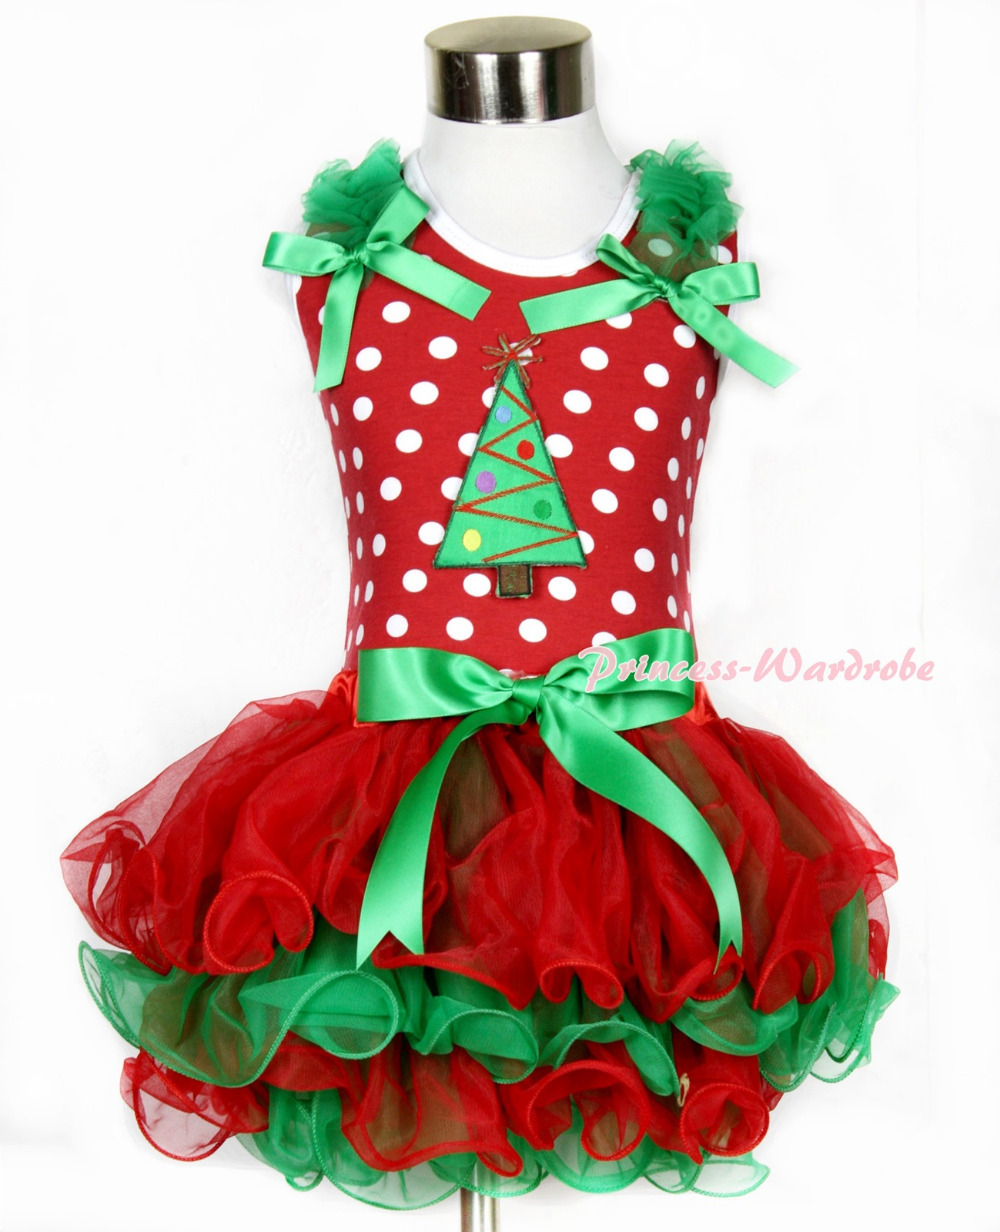 Xmas Minnie Dots Tank Top With Kelly Green Ruffles Kelly Green Bow &amp; Christmas Tree With Bow Red Green Petal Pettiskirt MAMH090<br>